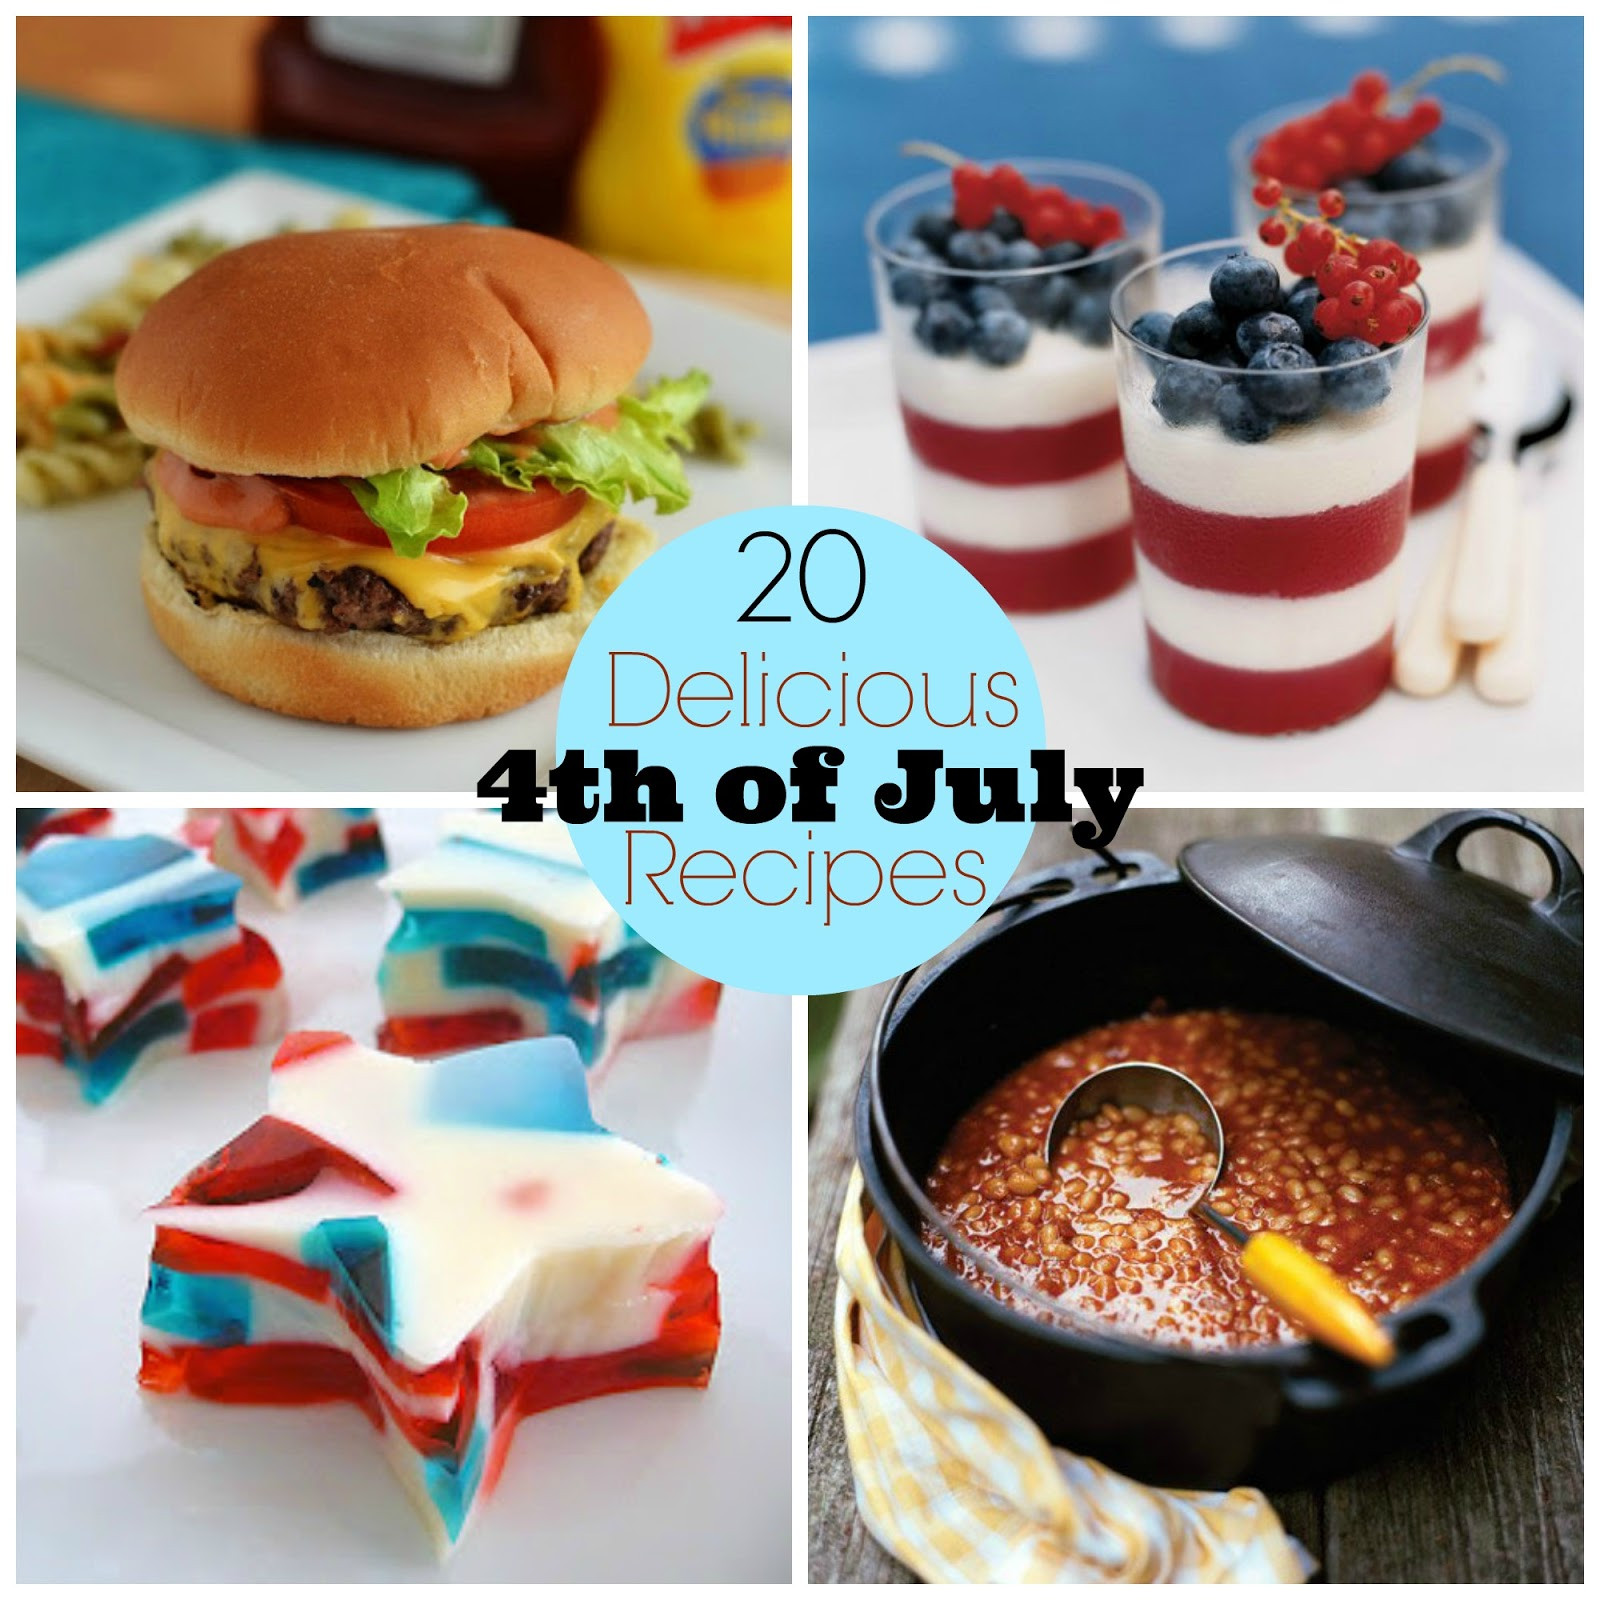 4Th Of July Side Dishes Easy  20 Delicious 4th of July Recipes